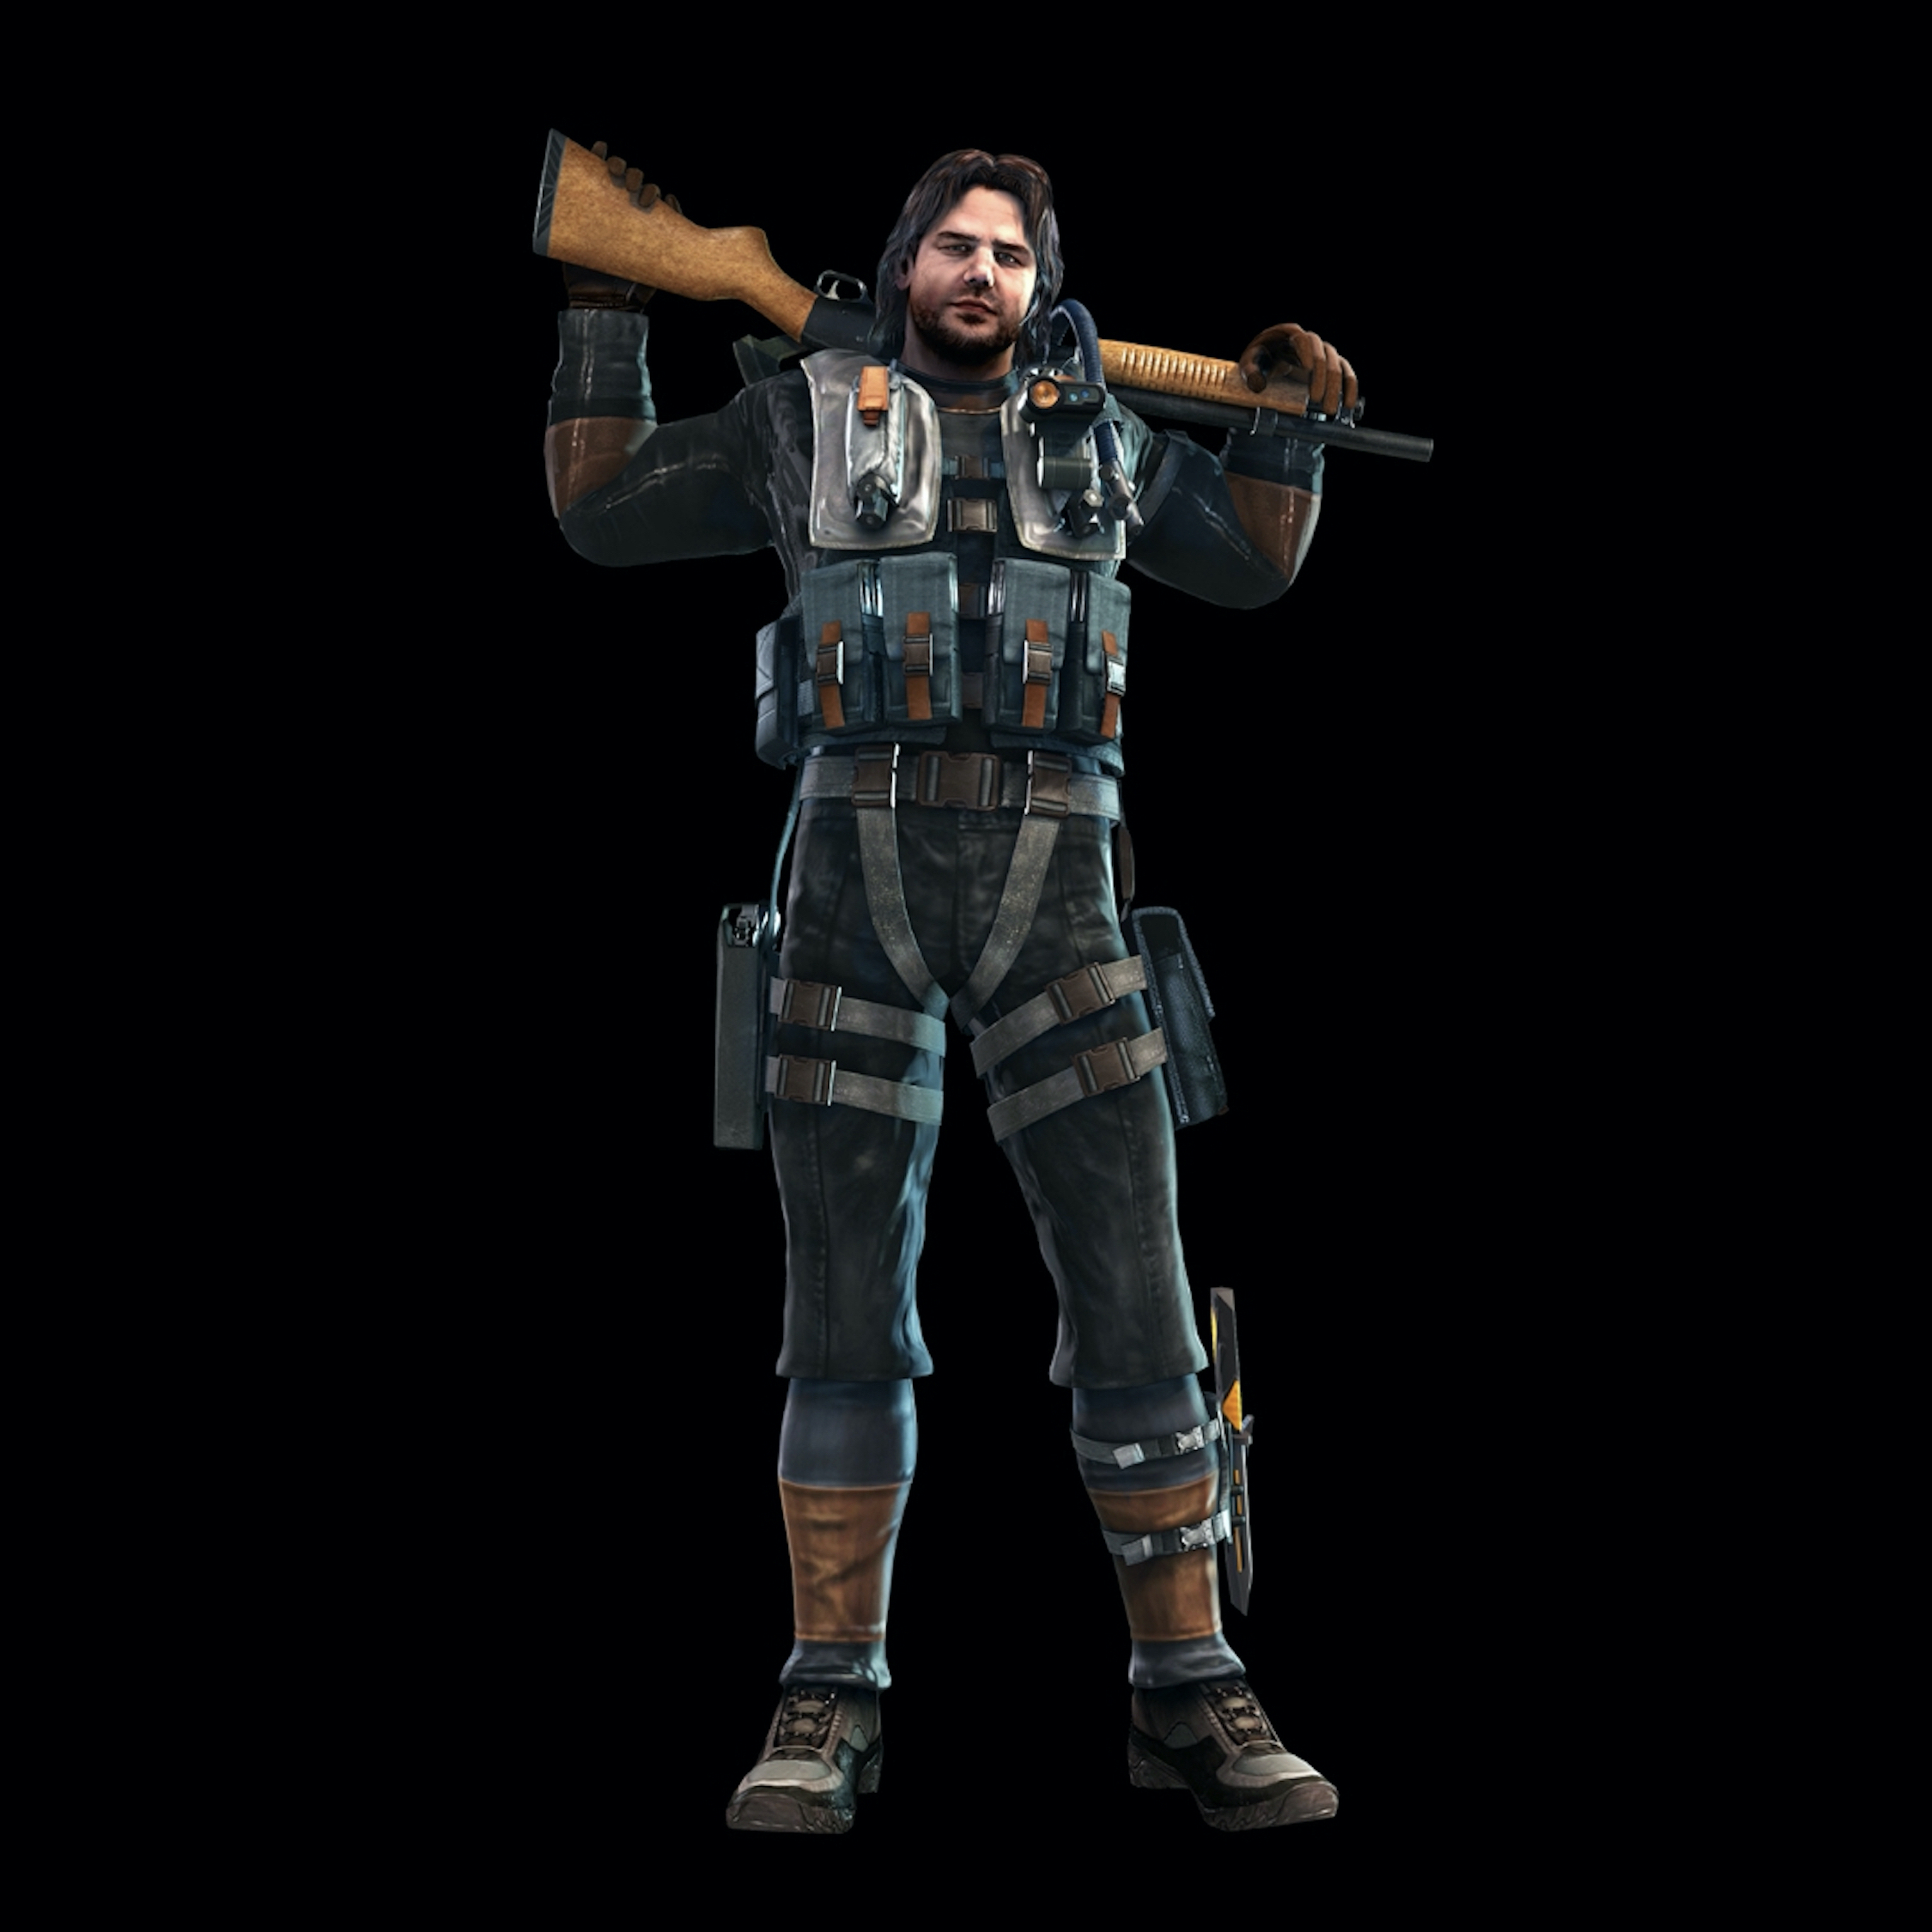 Jacob Redfield Resident Evil OutBrake and OutBrake File - 2